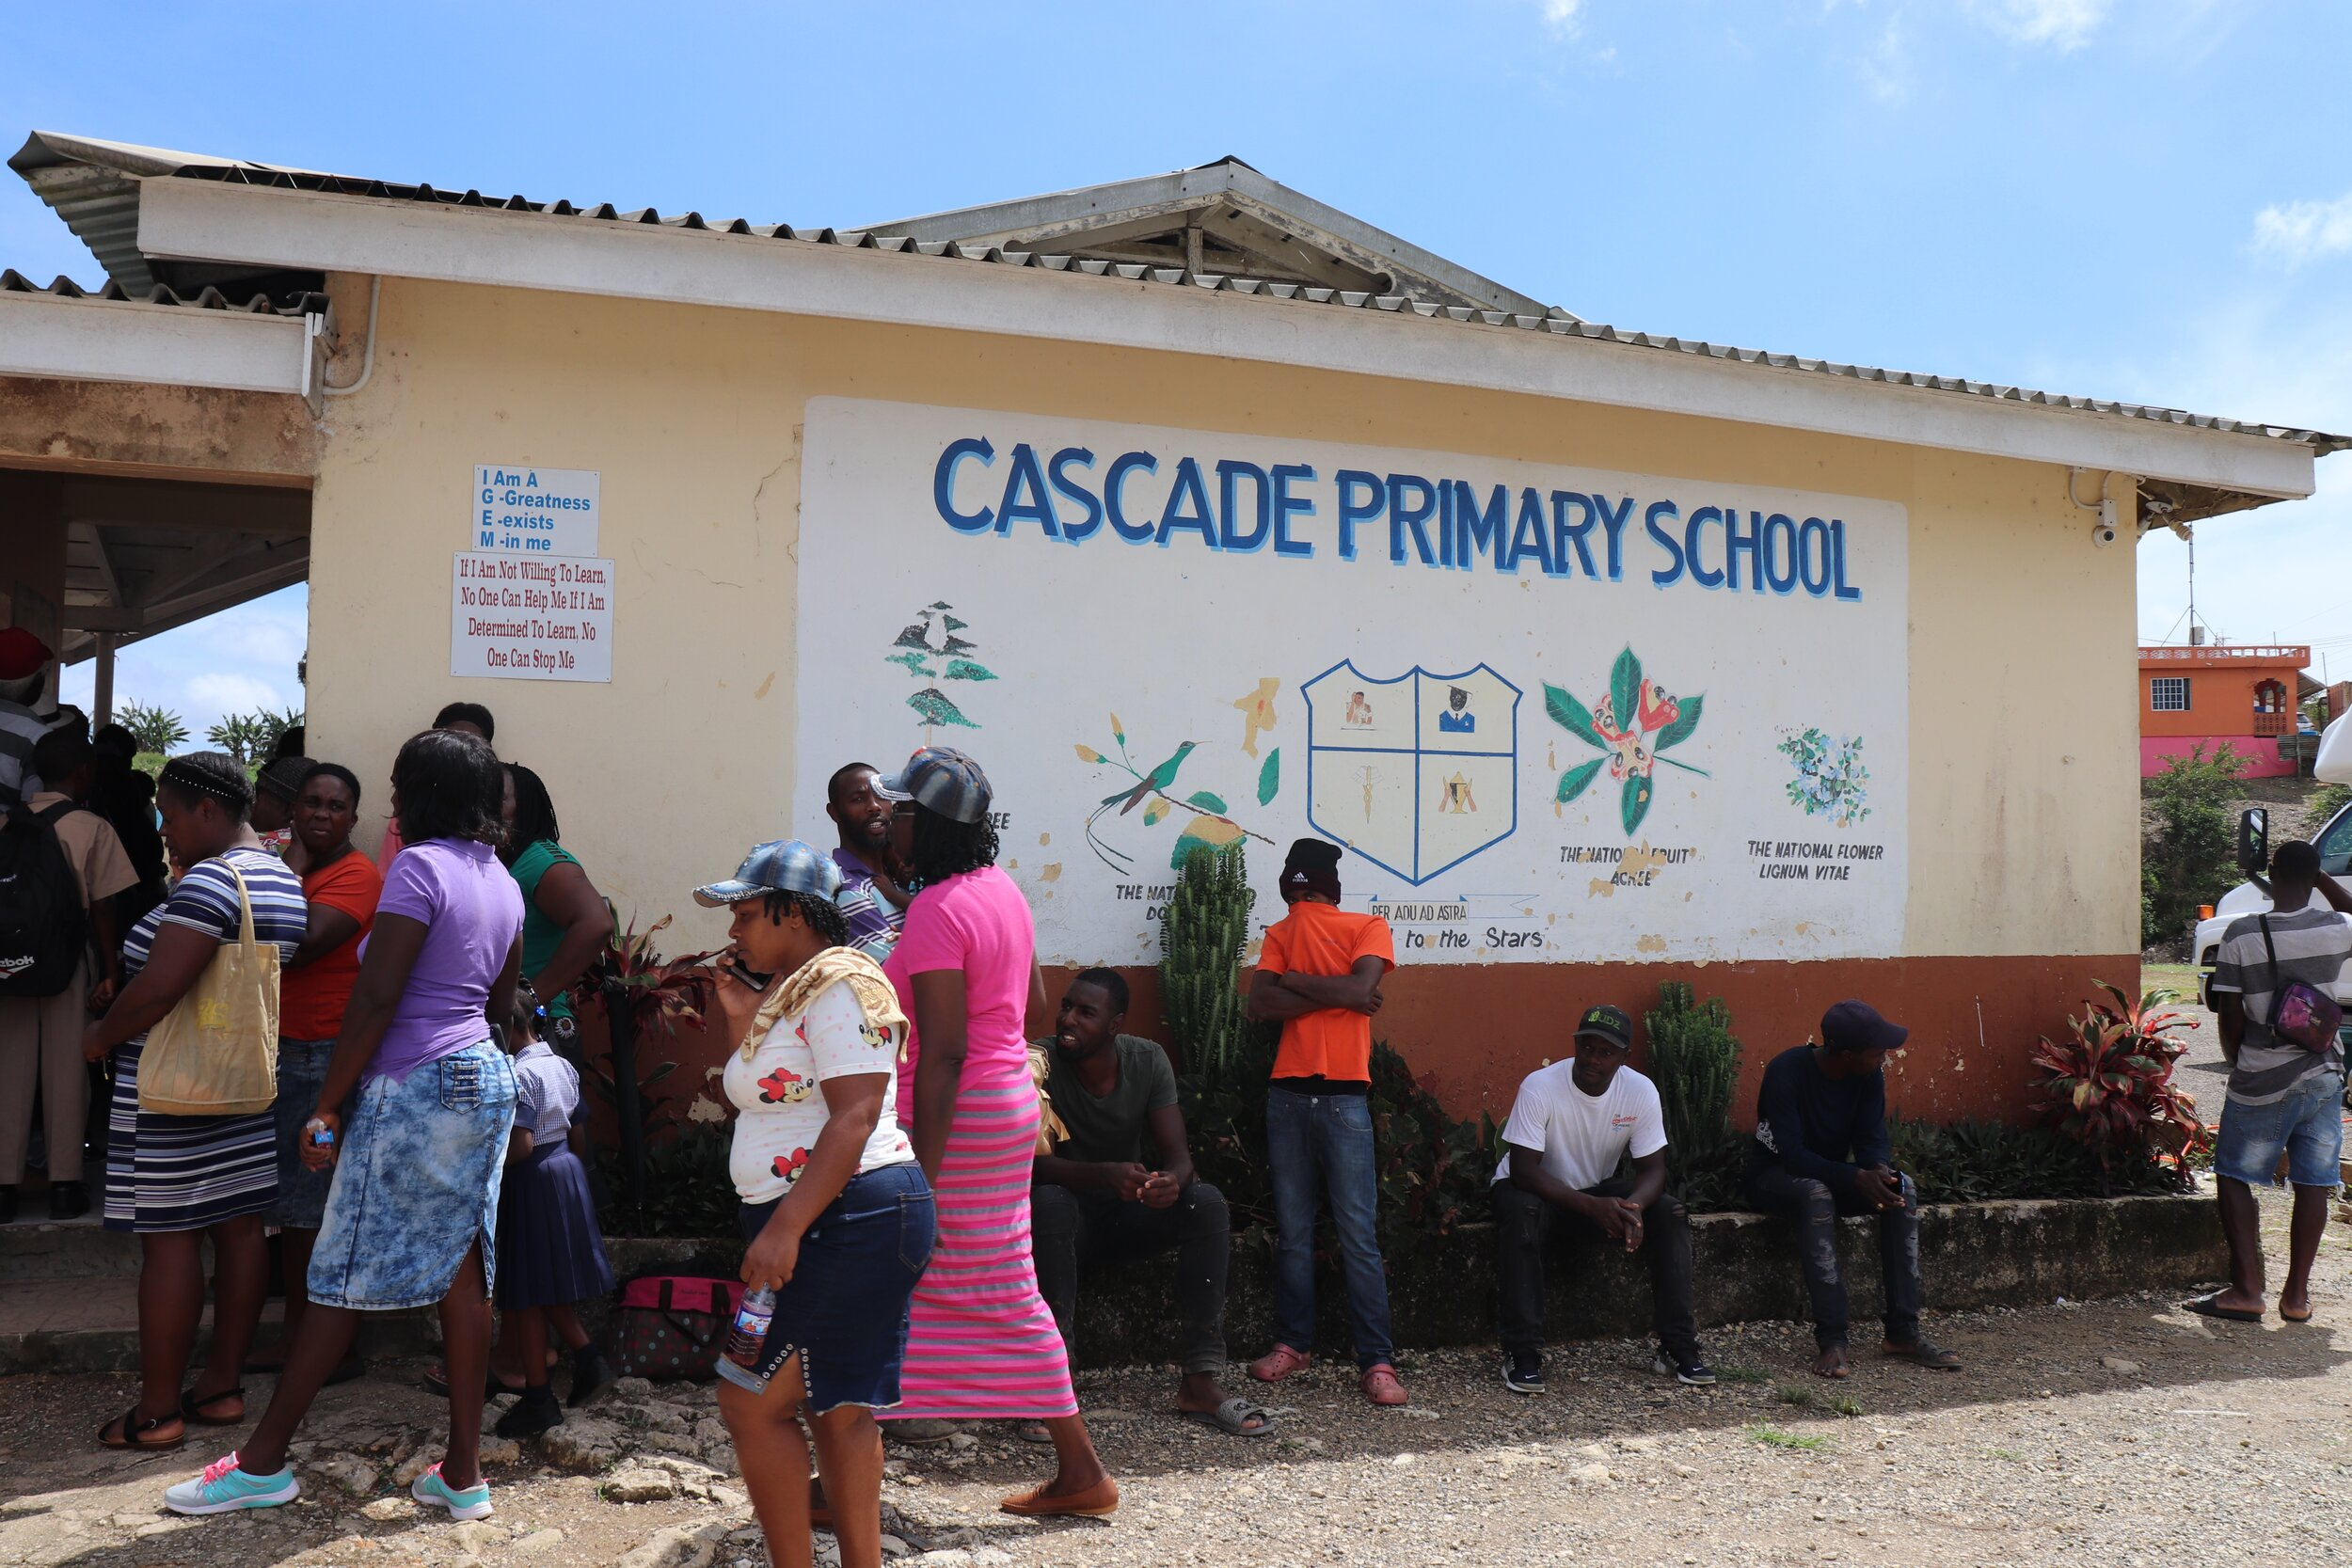 The mission took place at Cascade Primary School